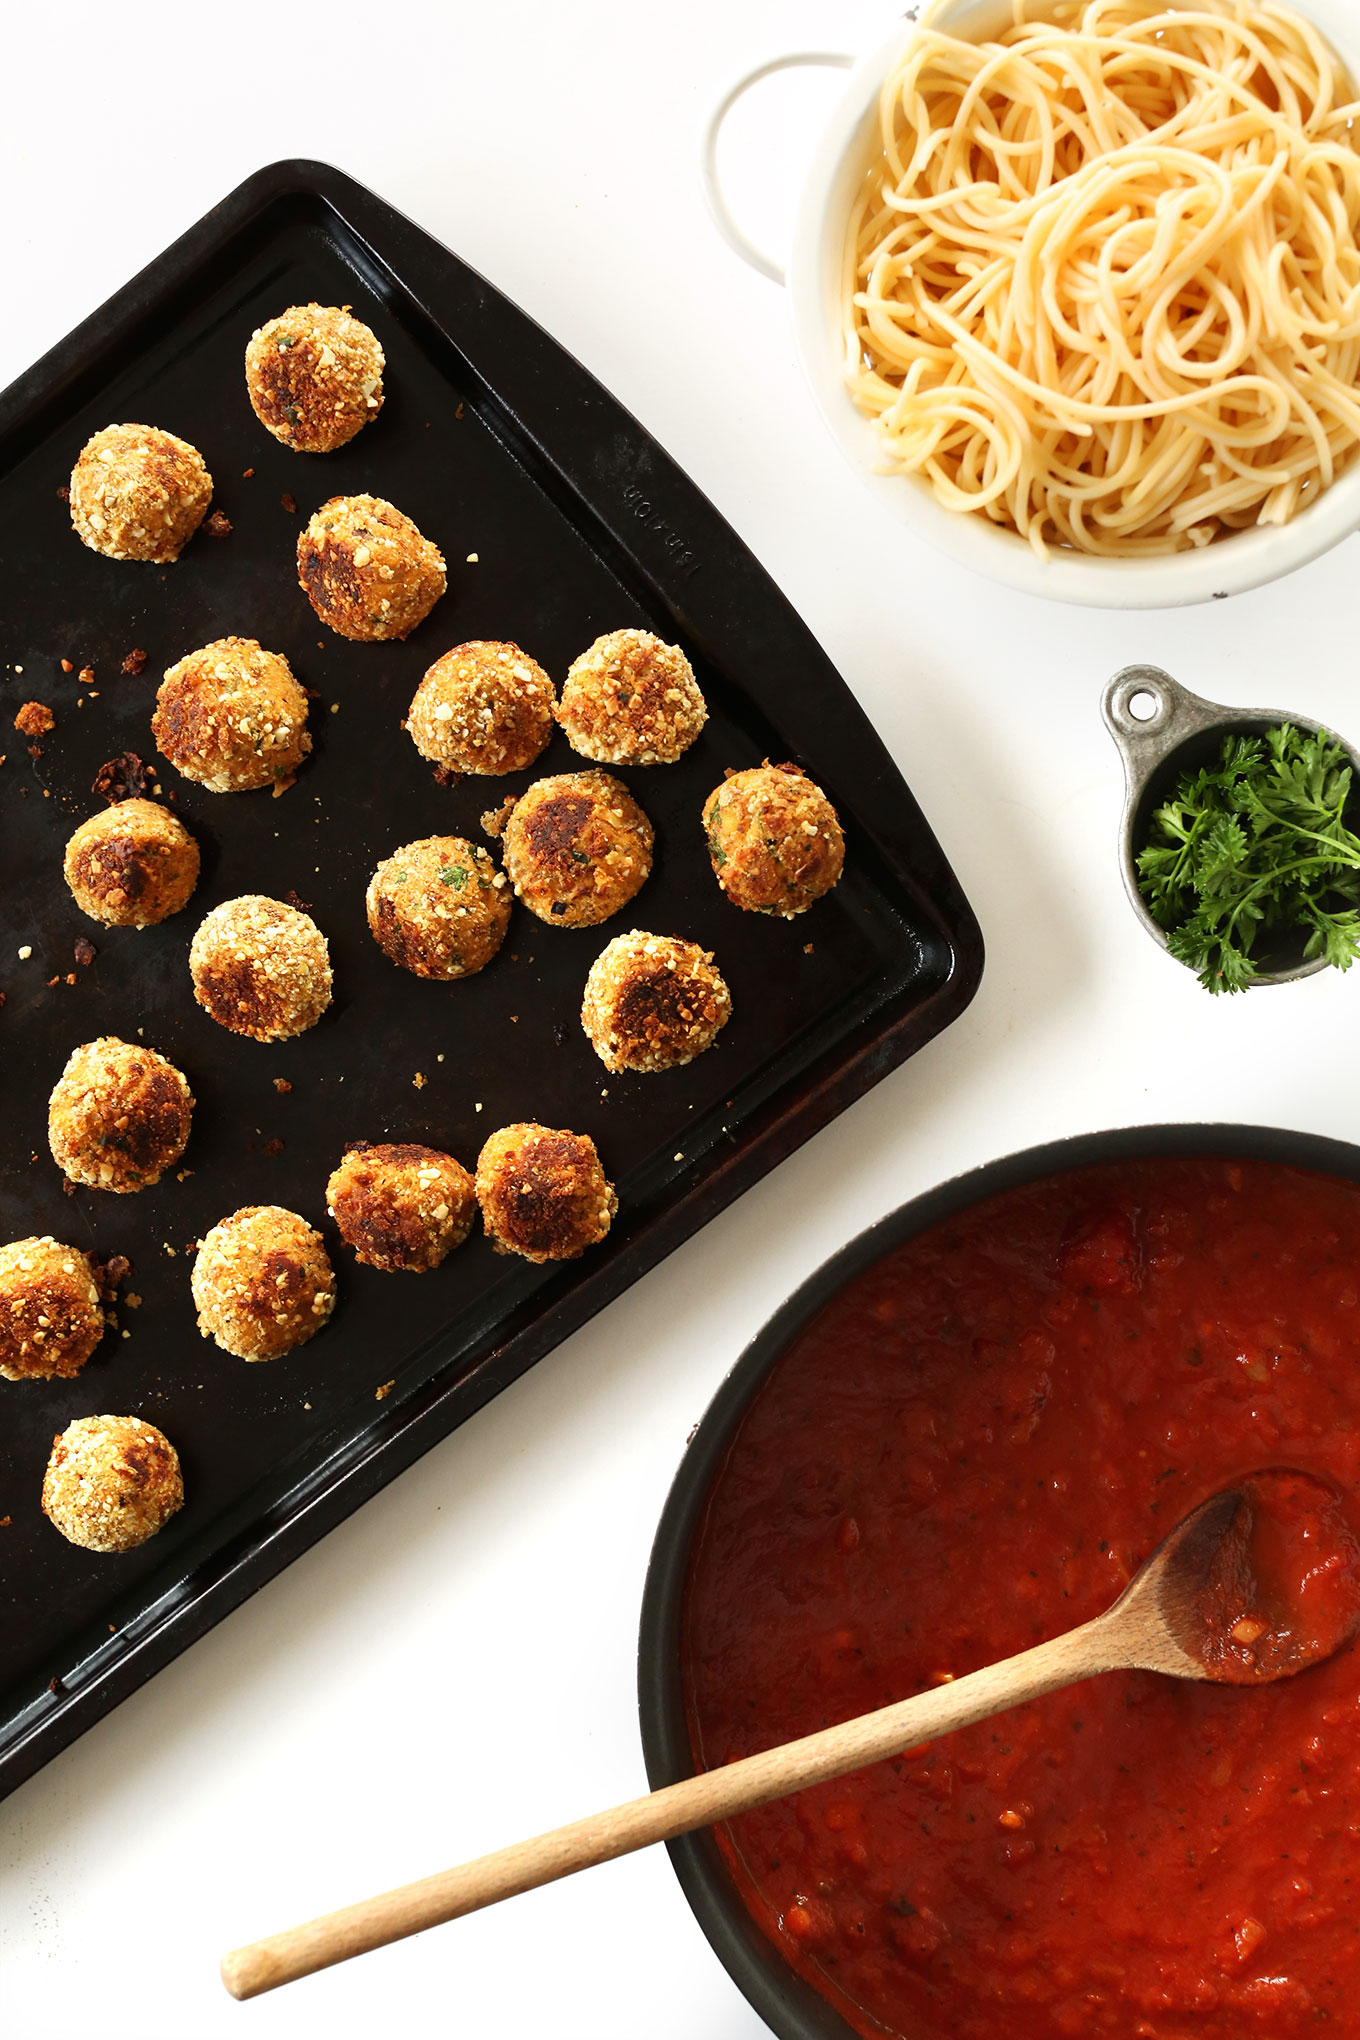 10-ingredient VEGAN Meatballs, perfect on pasta and so delicious! #minimalistbaker